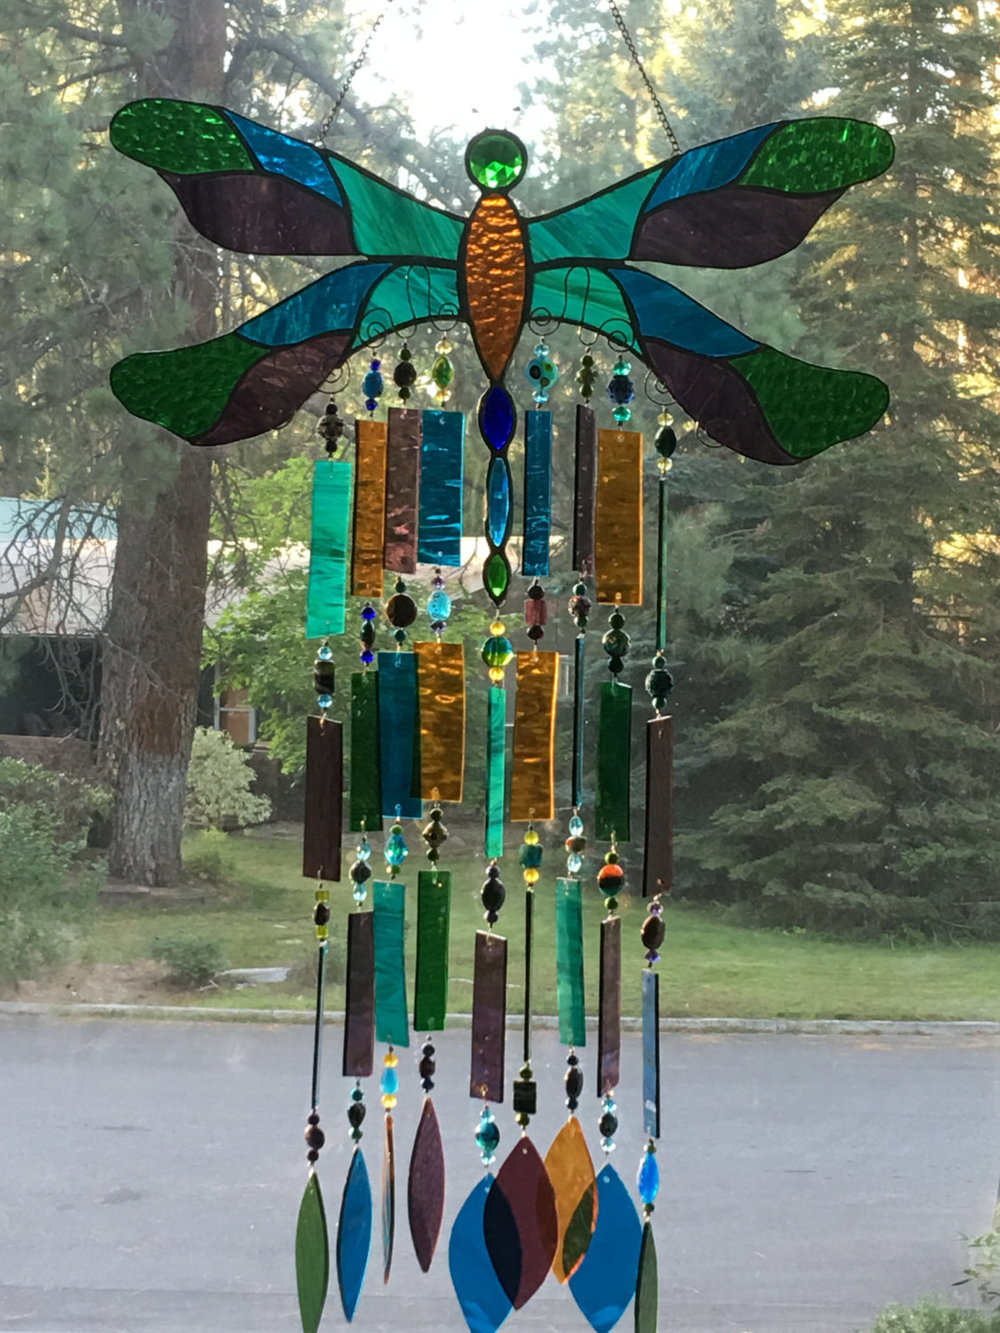 Dragonfly windchime by Cindy Draper